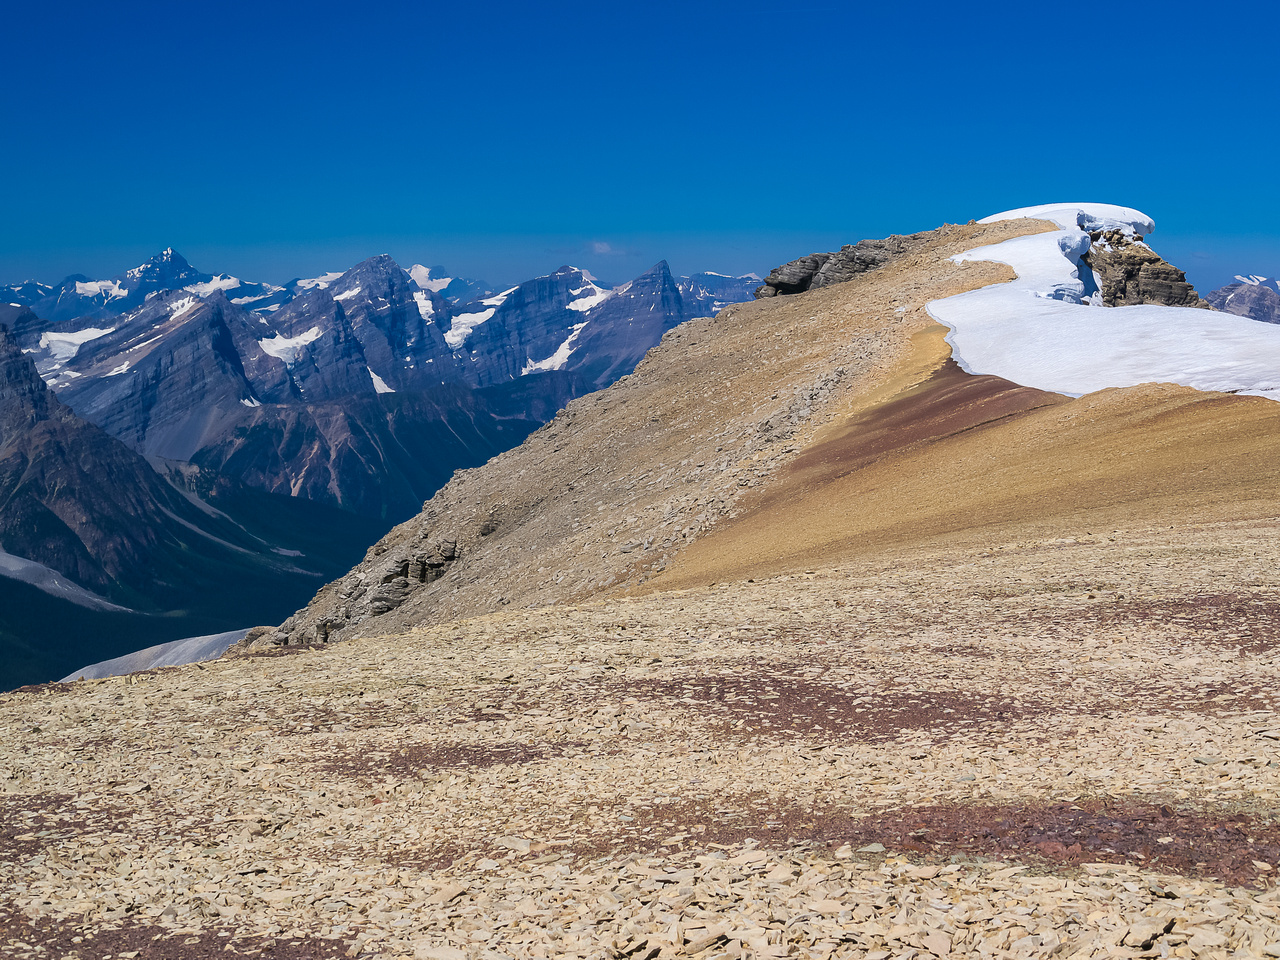 Still traversing over to the main summit - trying not to get too distracted by all the wonderful views!